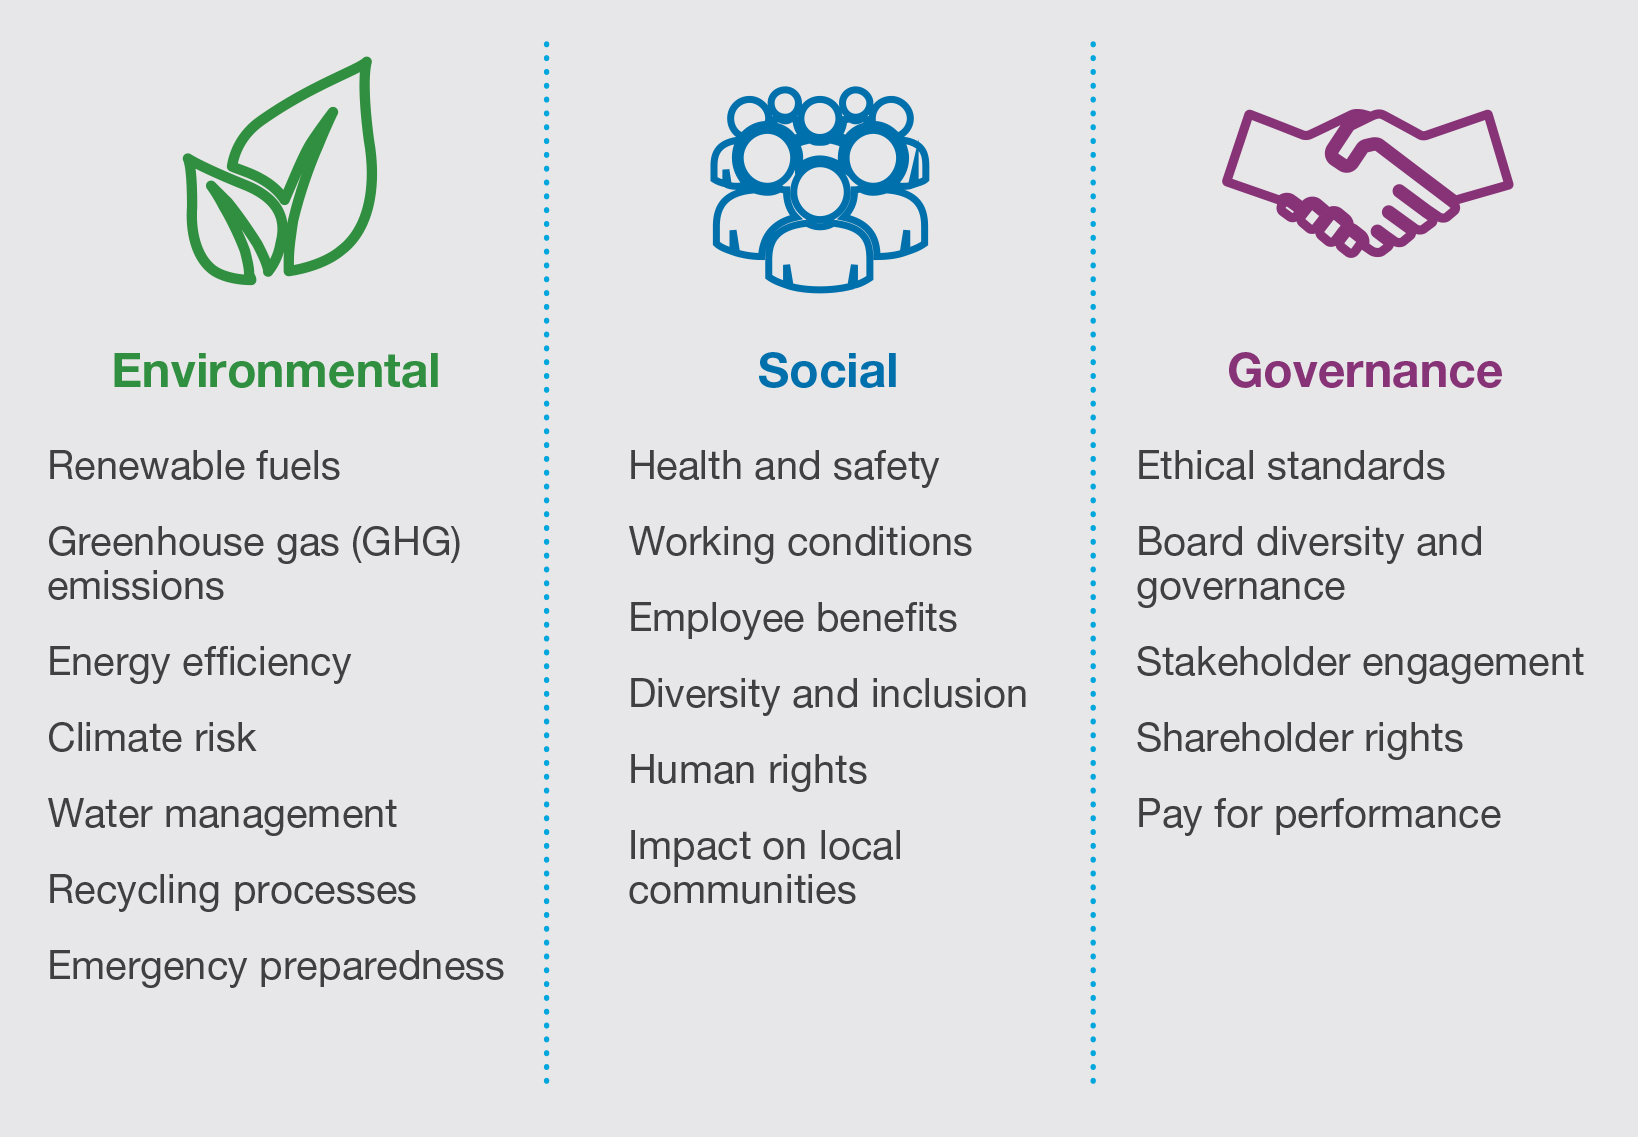 ESG Overview Infographic